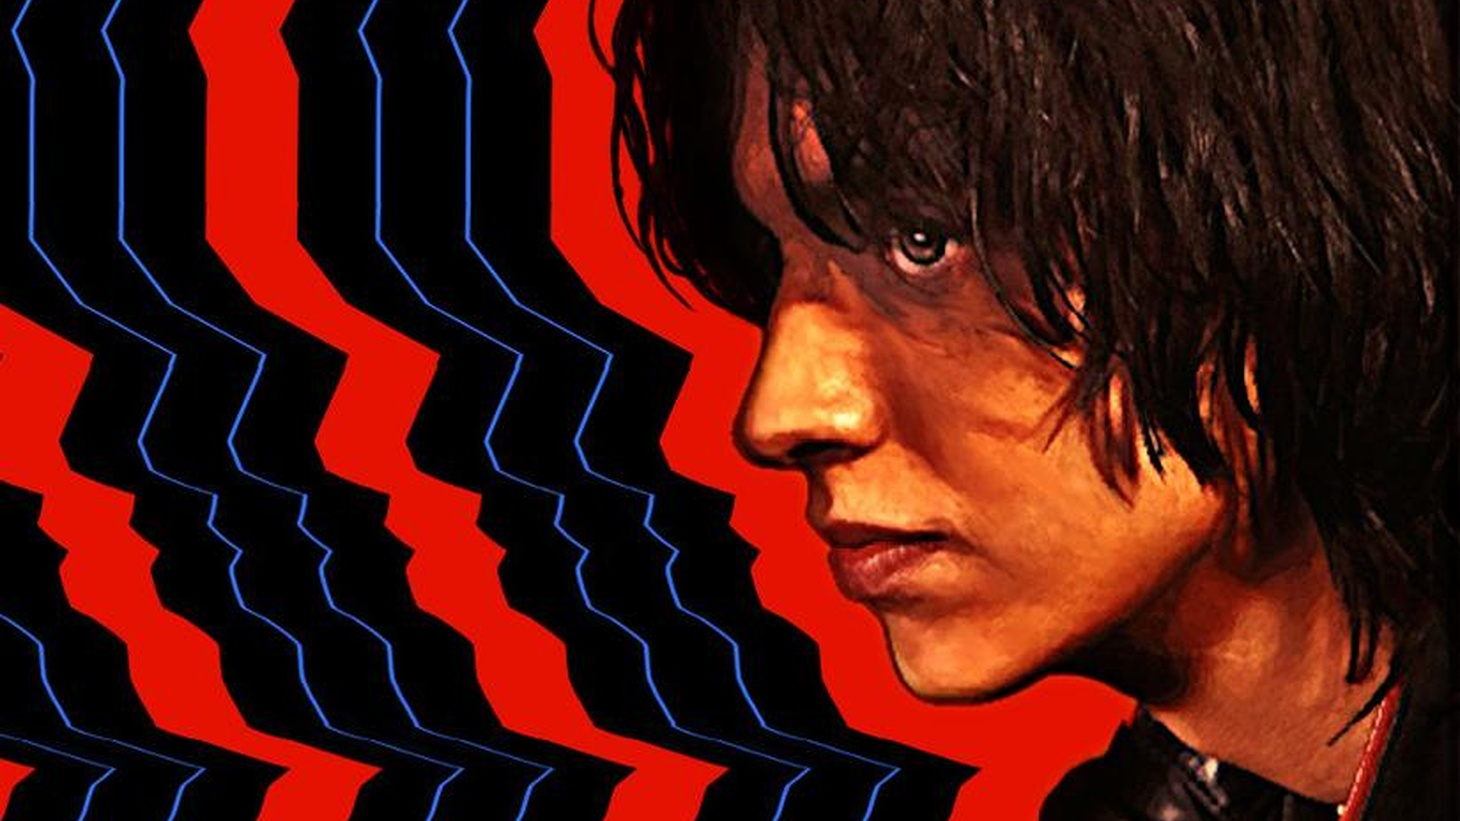 """The debut solo sojourn from The Strokes' frontman Julian Casablancas explores everything from electro to glam and includes Today's Top Tune, the souful, bluesy rocker """"4 Chords of the Apocalypse"""", from the album Phrazes for the Young."""